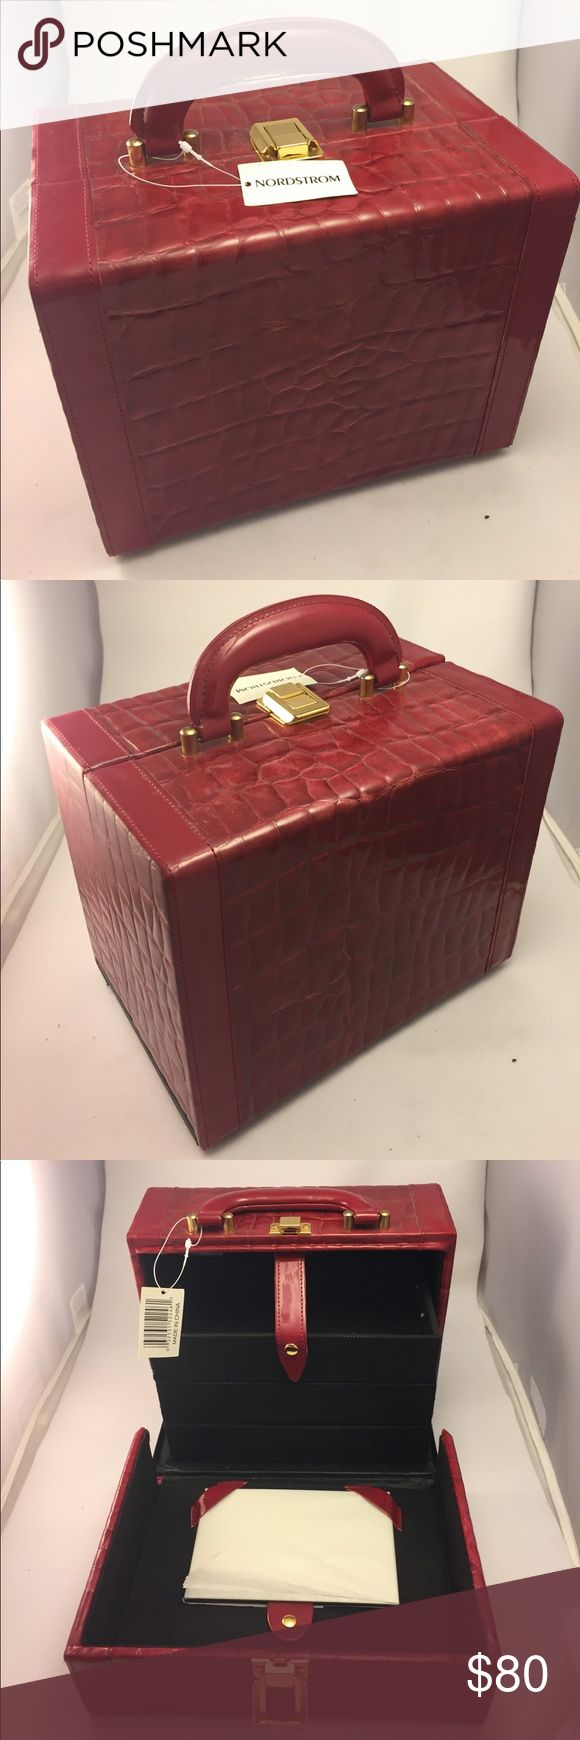 Nordstrom Burgundy makeup Bag!! NWT!!! 😍❤️ Never been used makeup bag and the mirror is still wrapped in tissue paper. This bag will hold your makeup and be super cute to carry around for any travel excursion near or far!!! 😮 Nordstrom Makeup Brushes & Tools